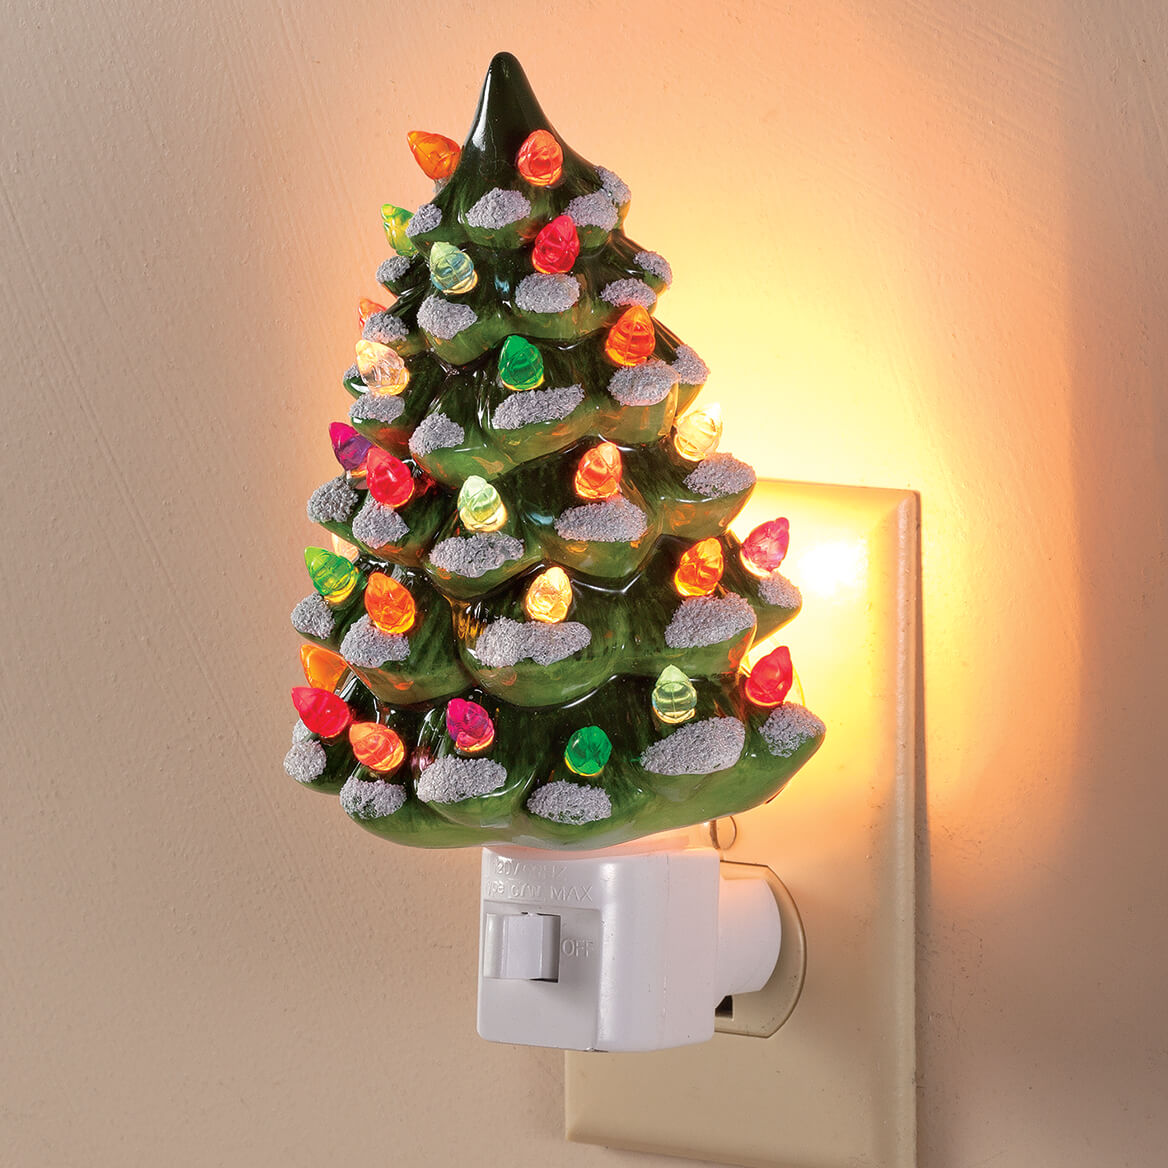 green and white ceramic tree night lights set of 2 364073